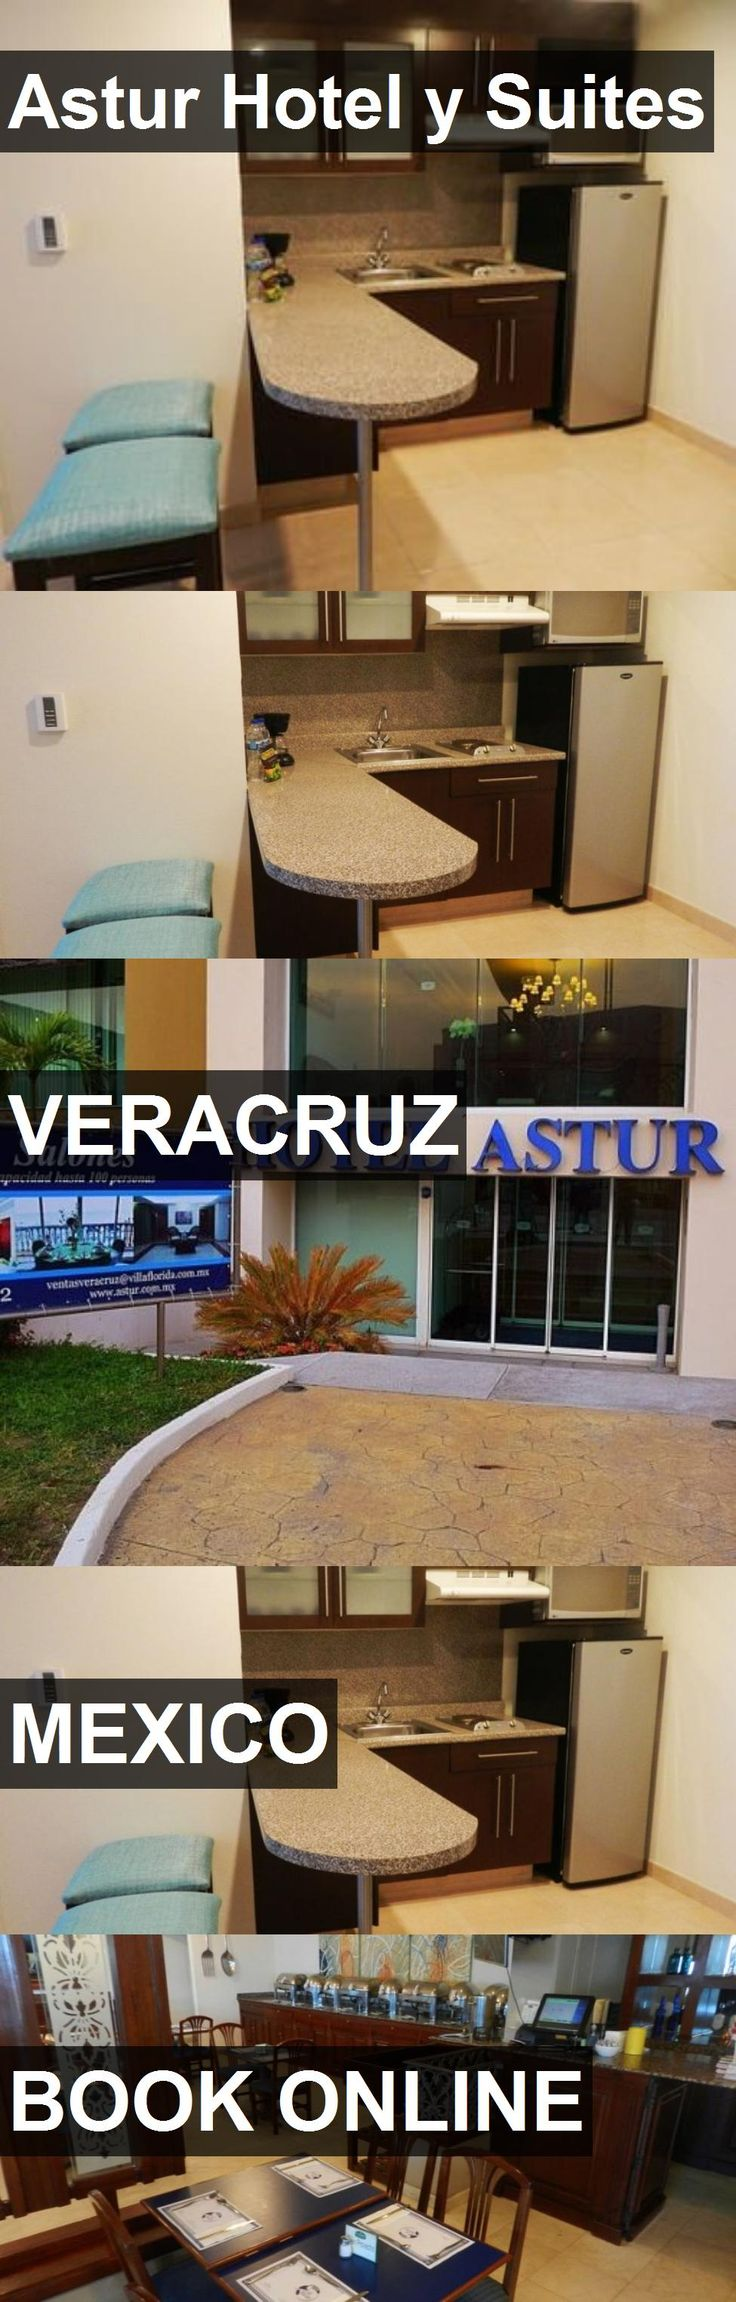 Hotel Astur Hotel y Suites in Veracruz, Mexico. For more information, photos, reviews and best prices please follow the link. #Mexico #Veracruz #AsturHotelySuites #hotel #travel #vacation